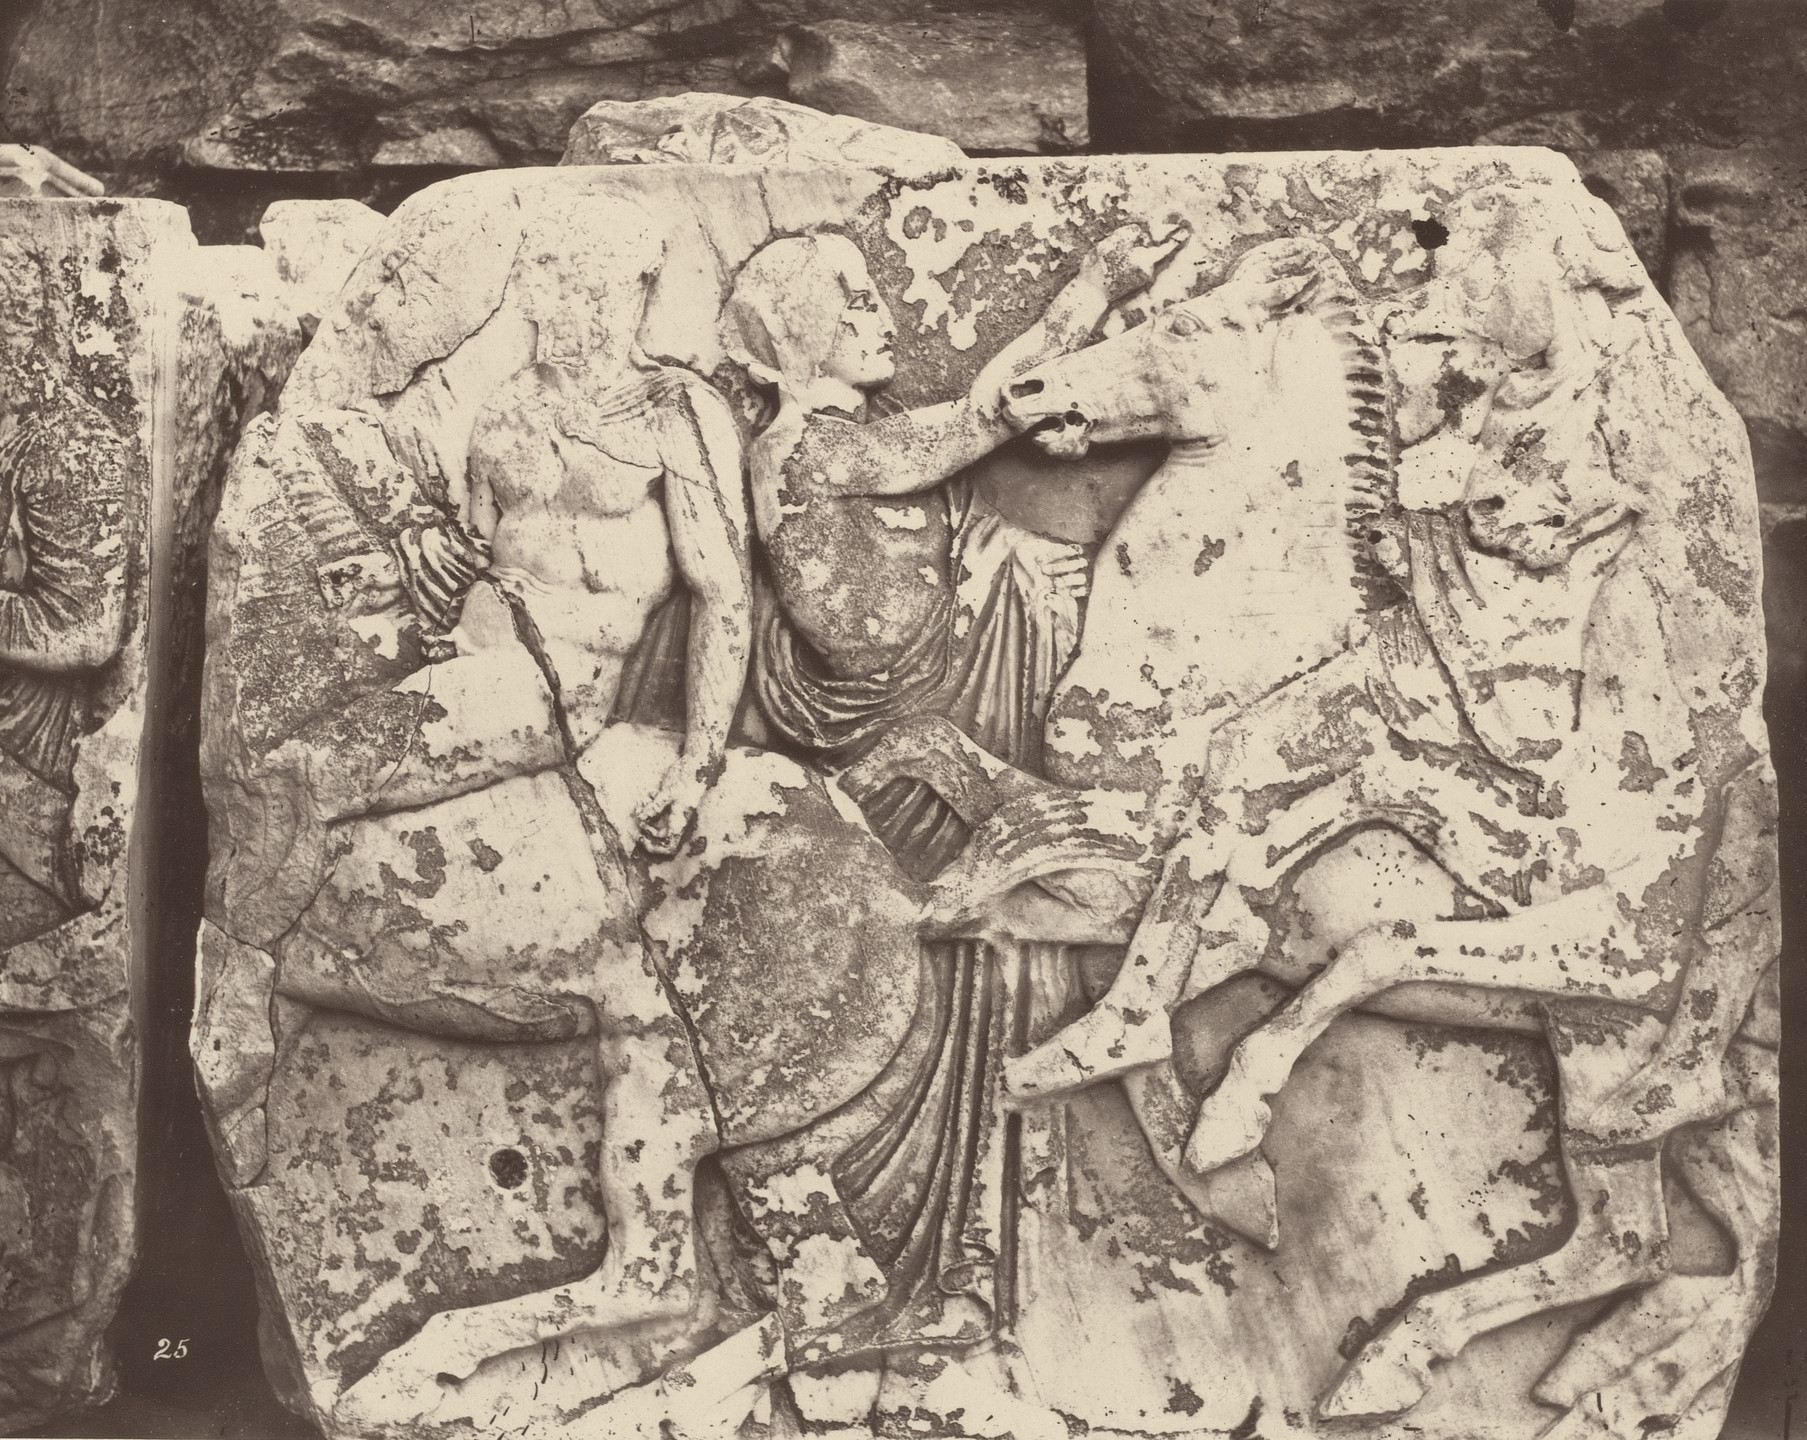 William James Stillman. Fragment of Frieze from the Parthenon. 1869